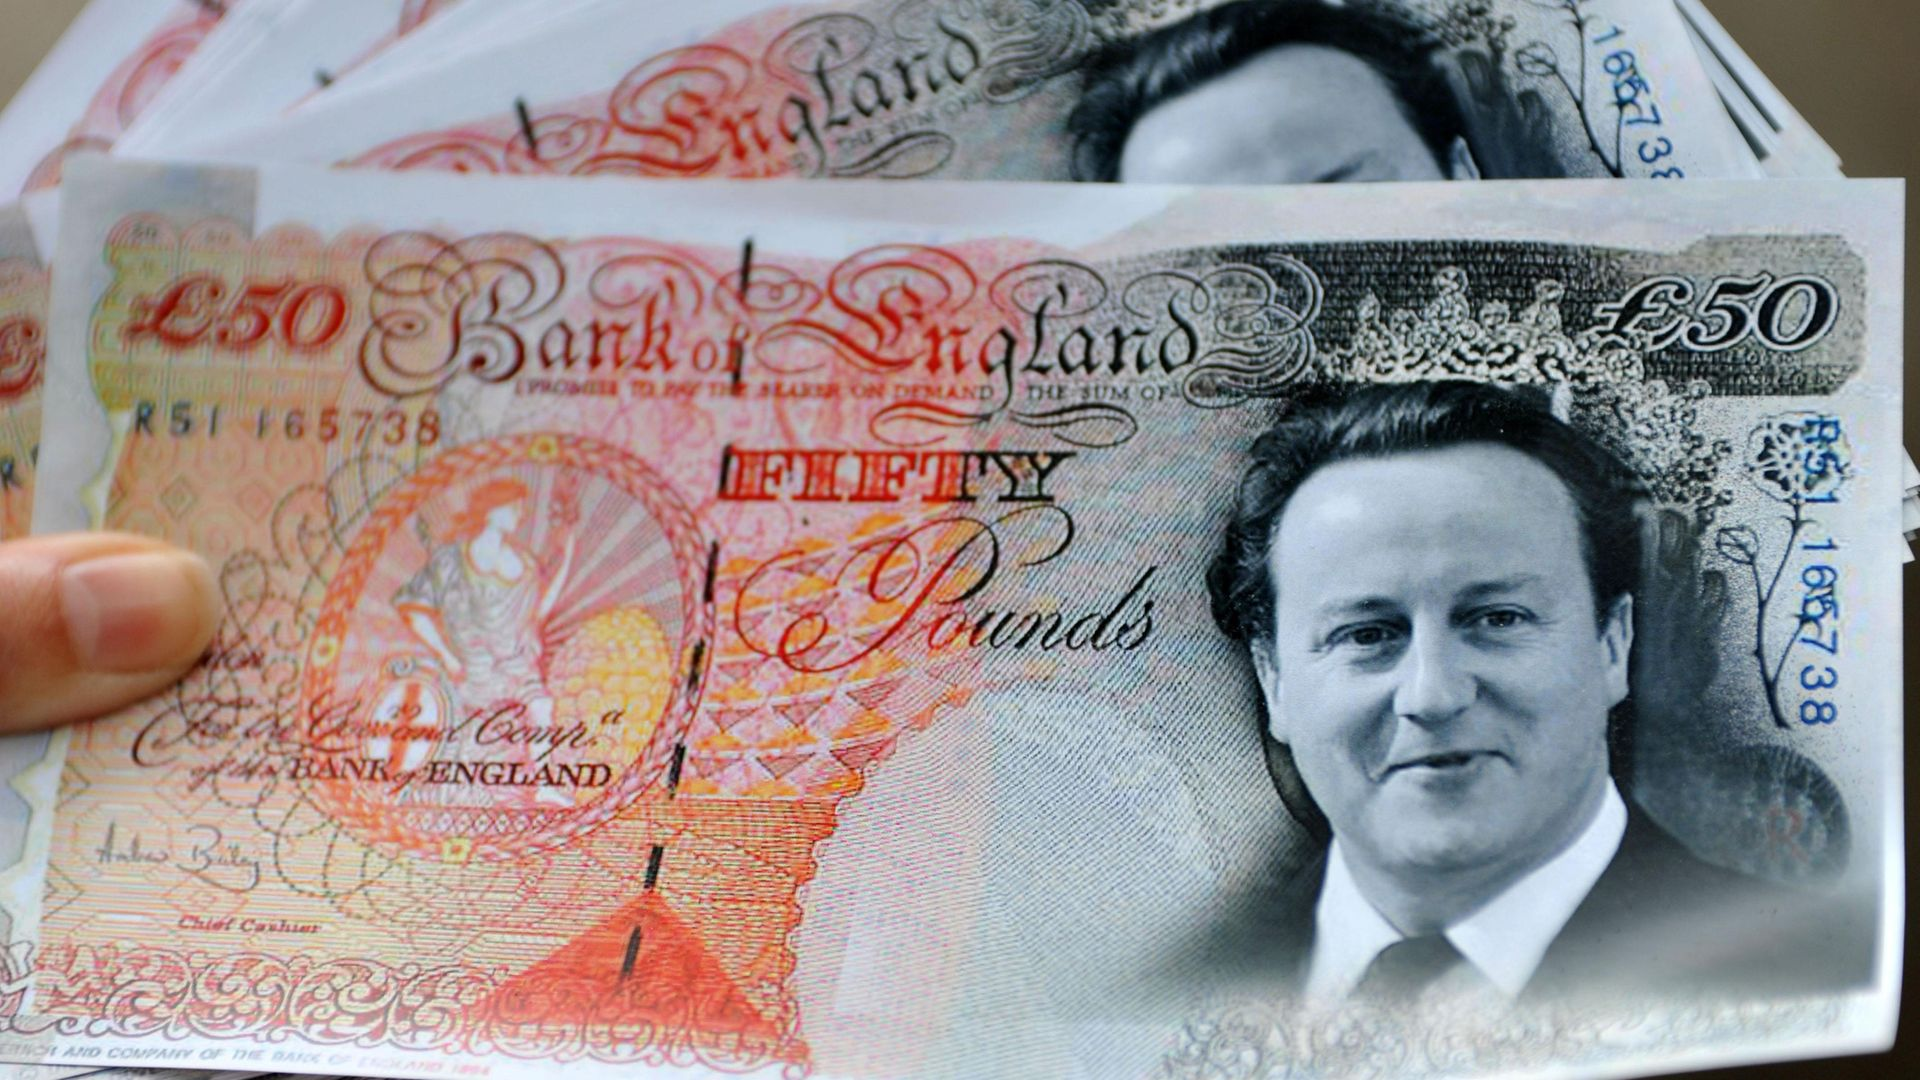 Mock £50 notes featuring the head of David Cameron, held by members of the union UNISON demonstrating his proposals for the NHS in 2011 - Credit: PA